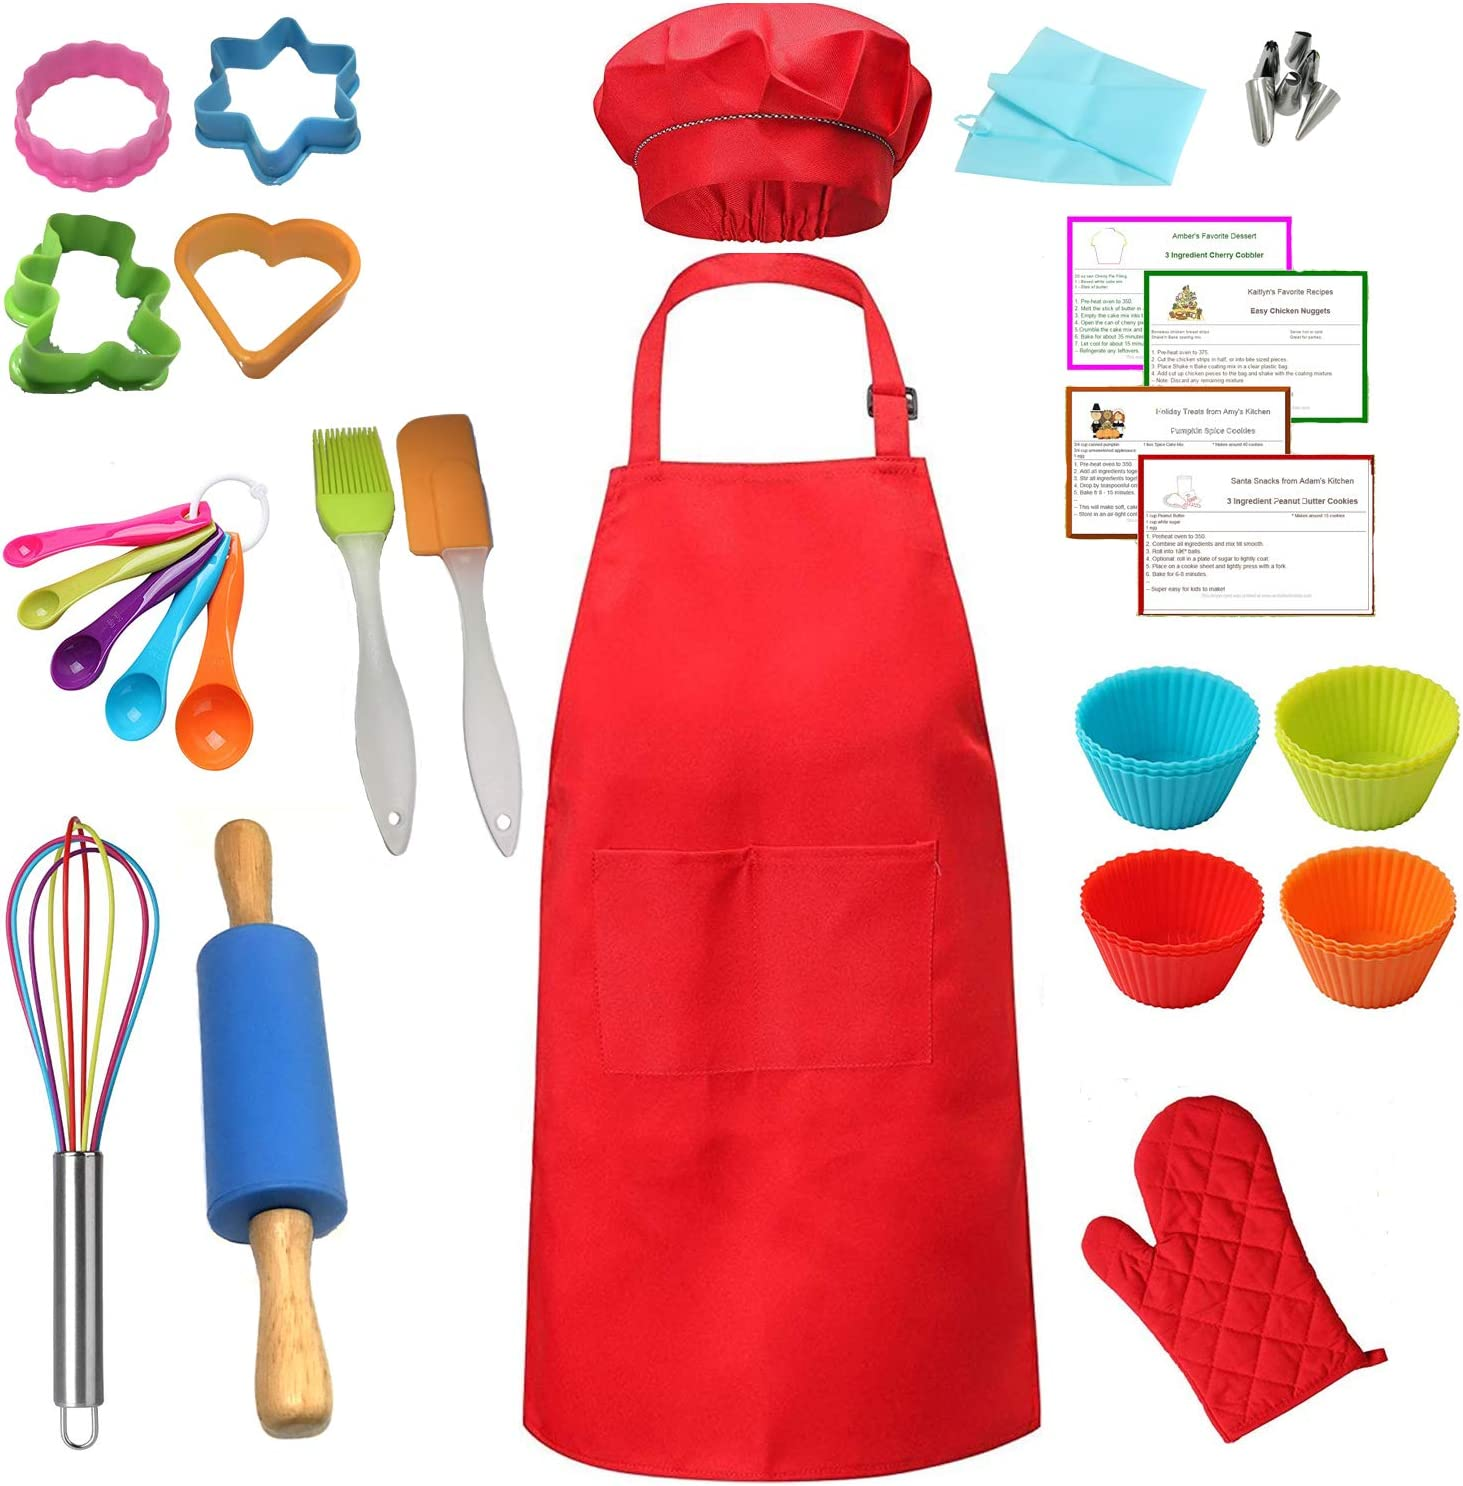 Kids Real Baking Set 42 Pieces include Apron, Chef Hat, Oven Mitt, Rolling Pin, Cookie Cutter and other Real Baking tools (42)